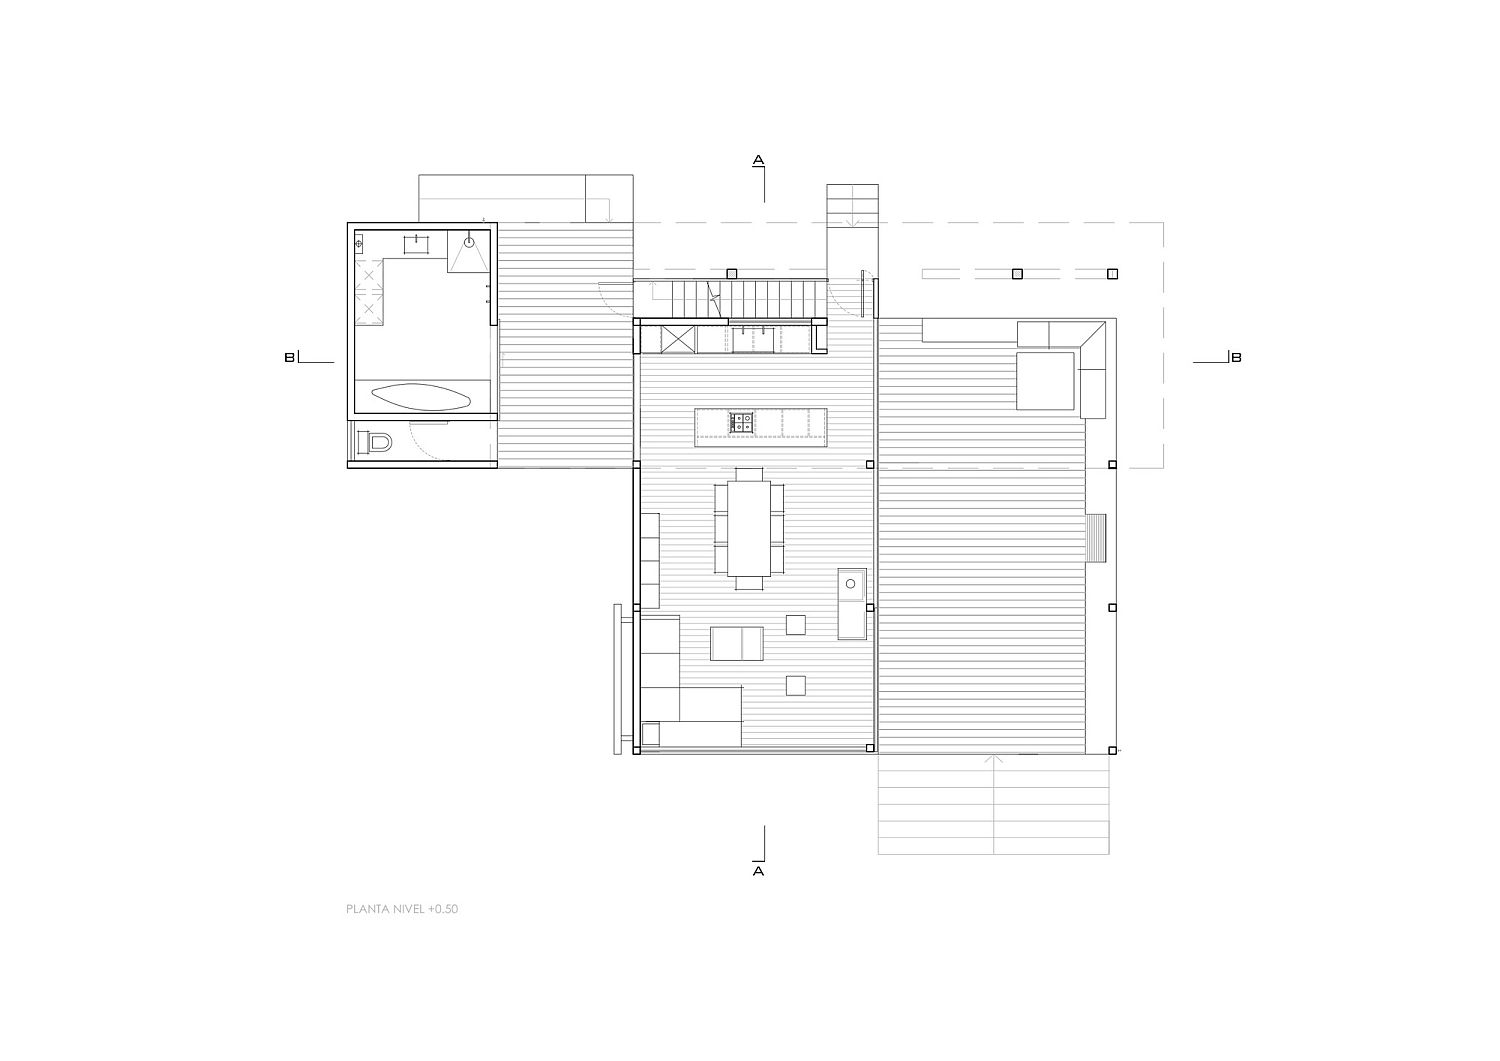 Ground level floor plan of Harfagar House